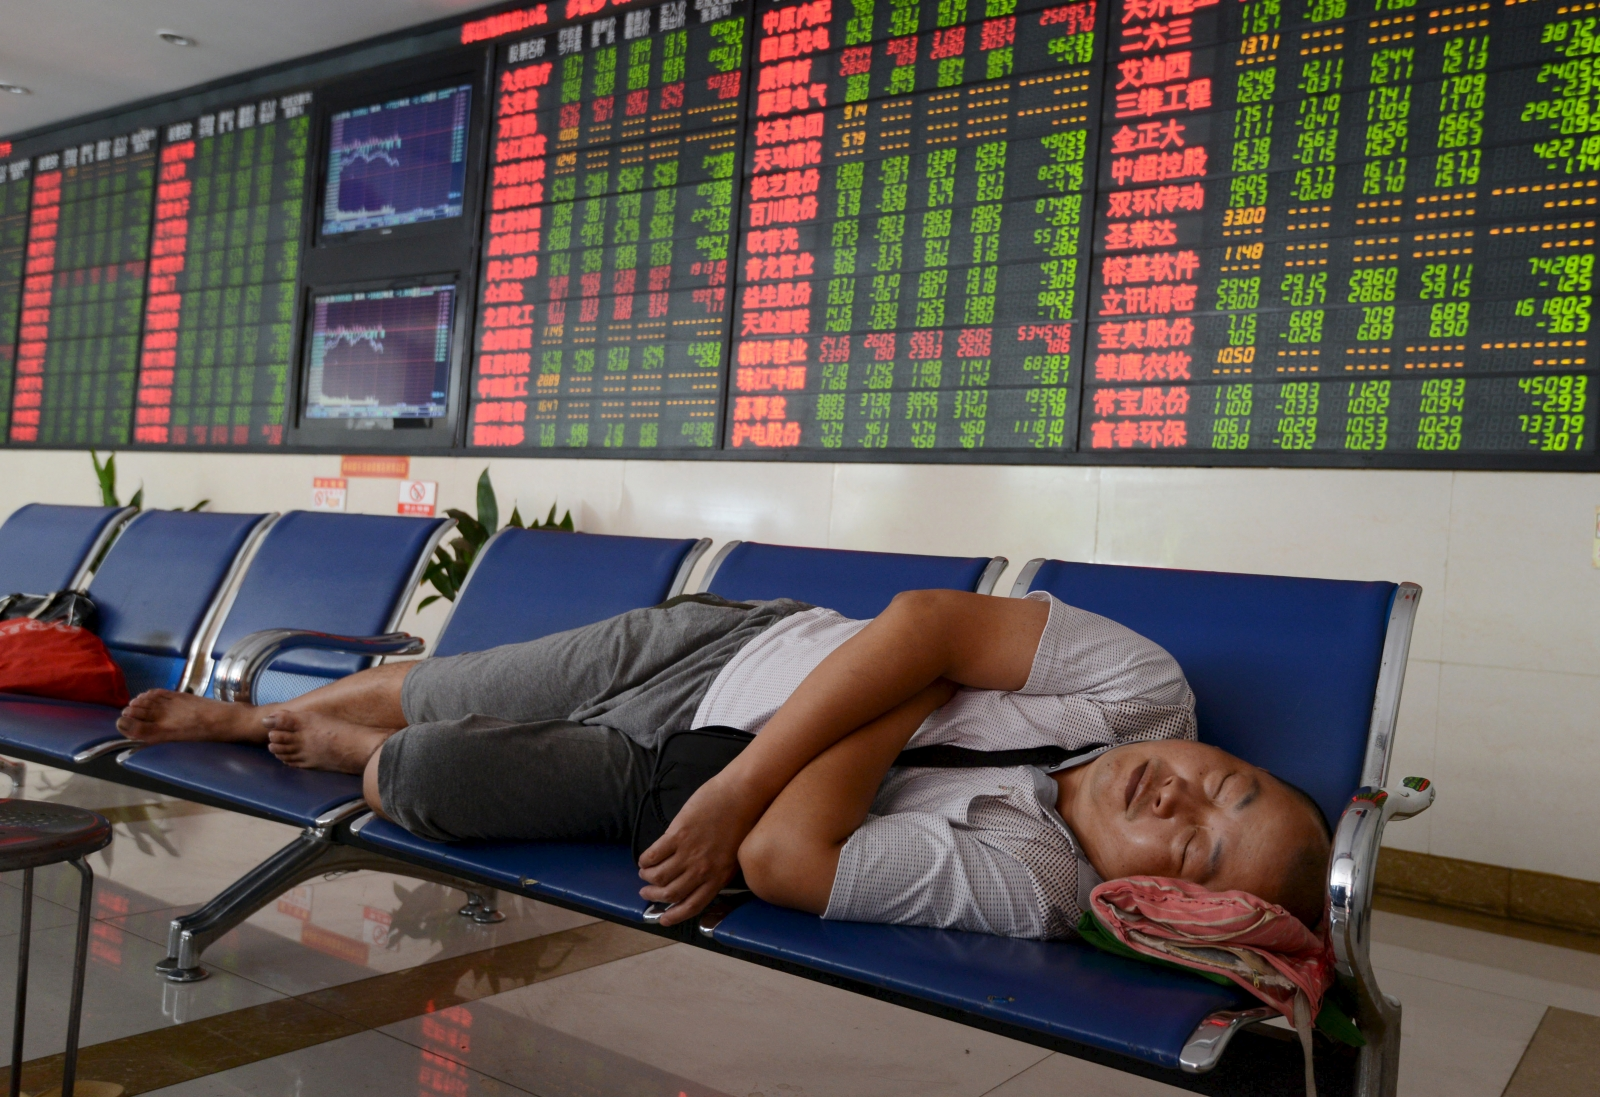 Asian markets: Shanghai Composite slips after US reports slowest job growth in more than 5 years